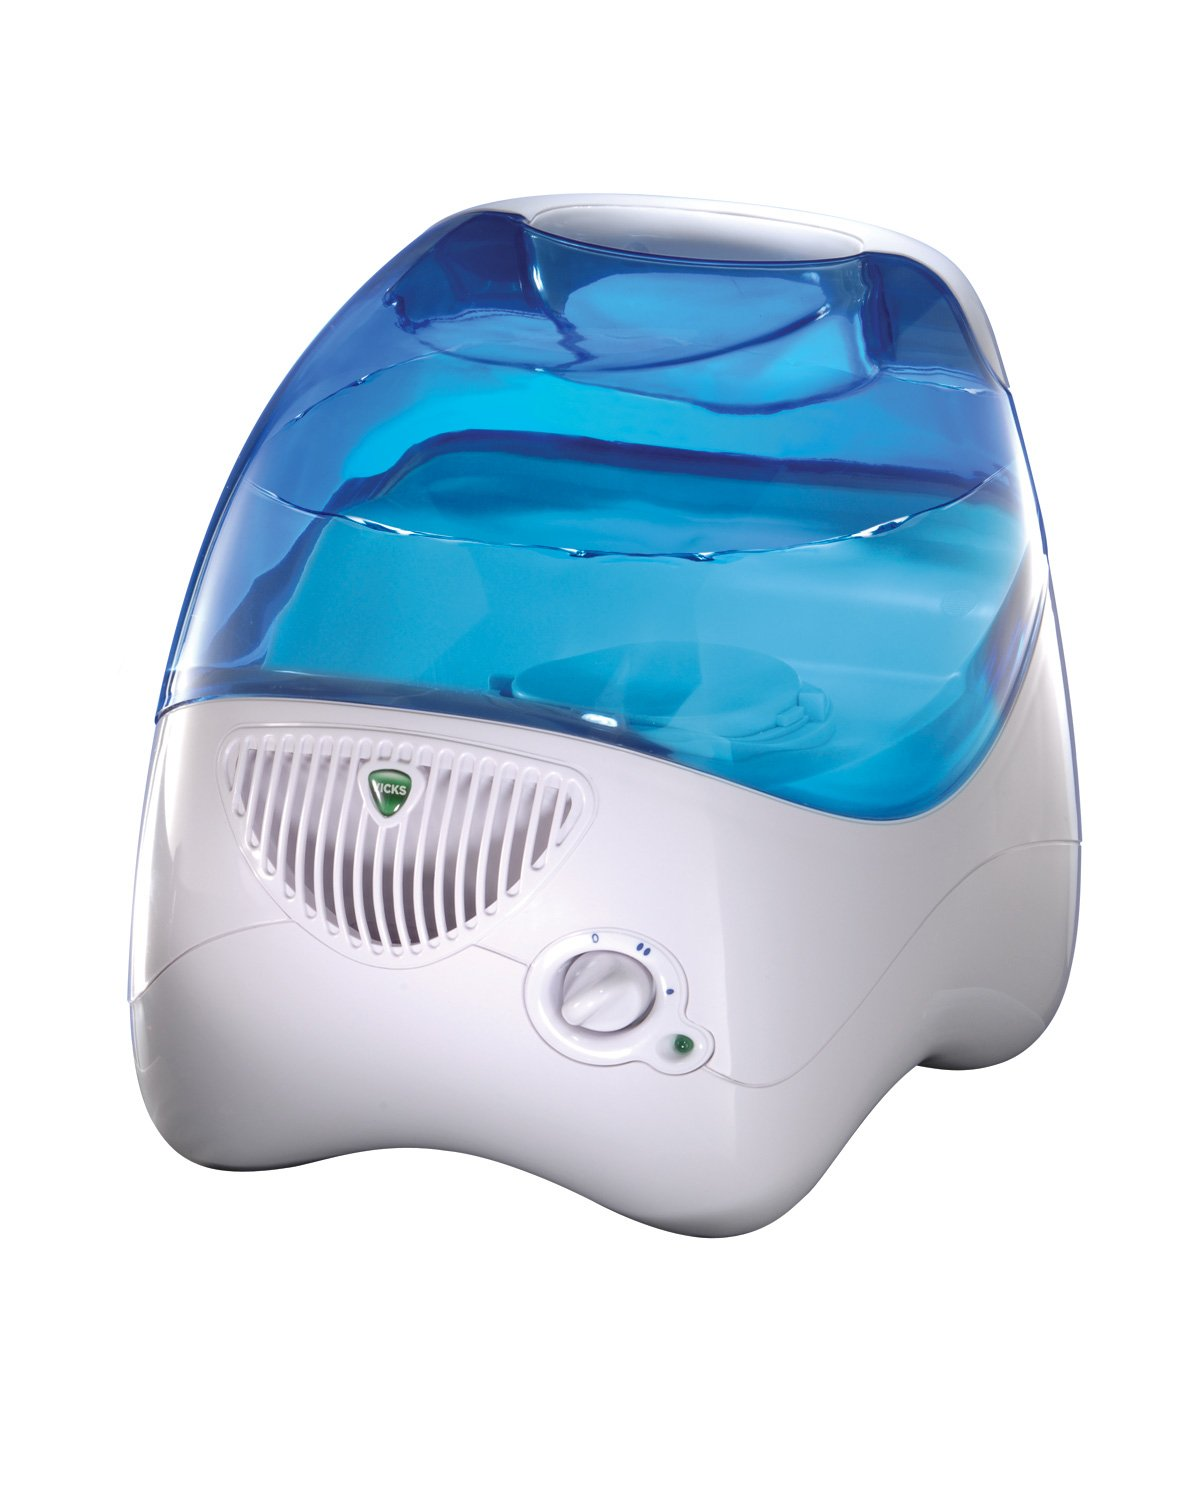 Top 10 Best Single Room Humidifiers List and Reviews 2016 2017 on  #1C89AF